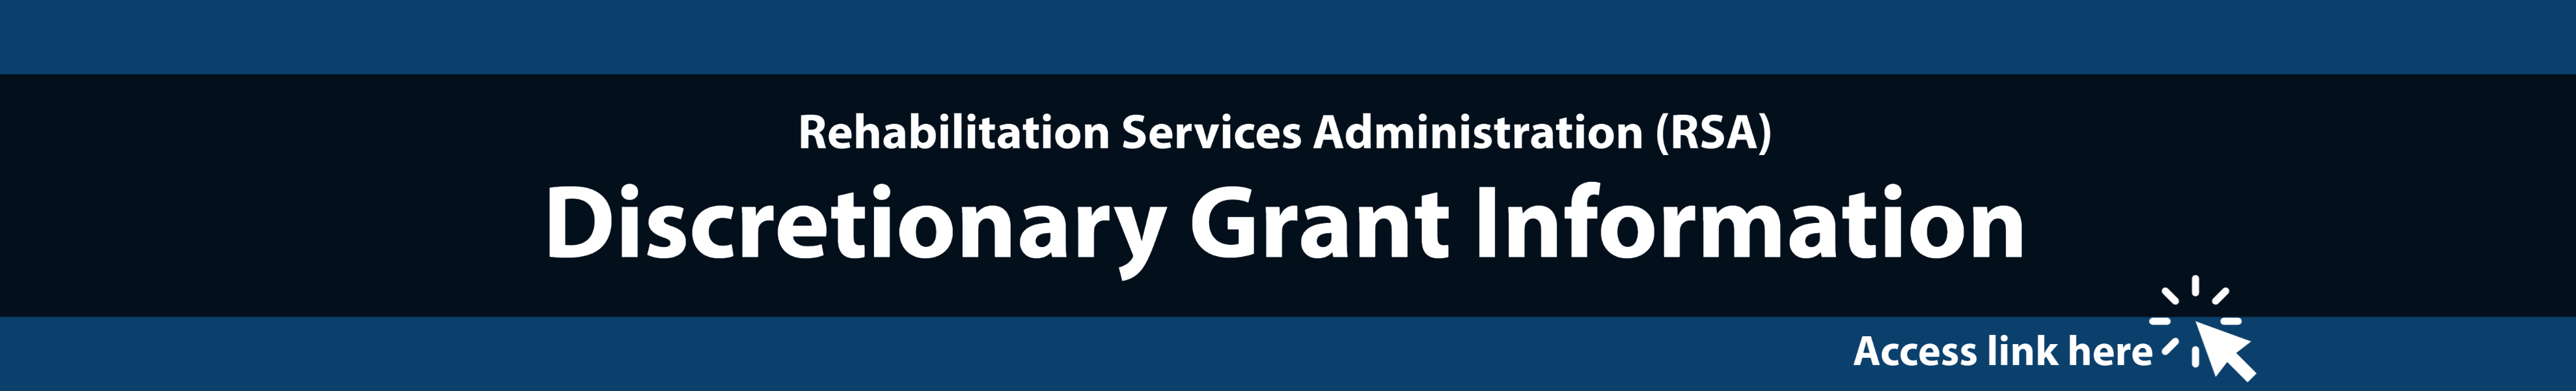 Rehabilitation Services Administration (RSA) Discretionary Grant Information. Select banner to access link.